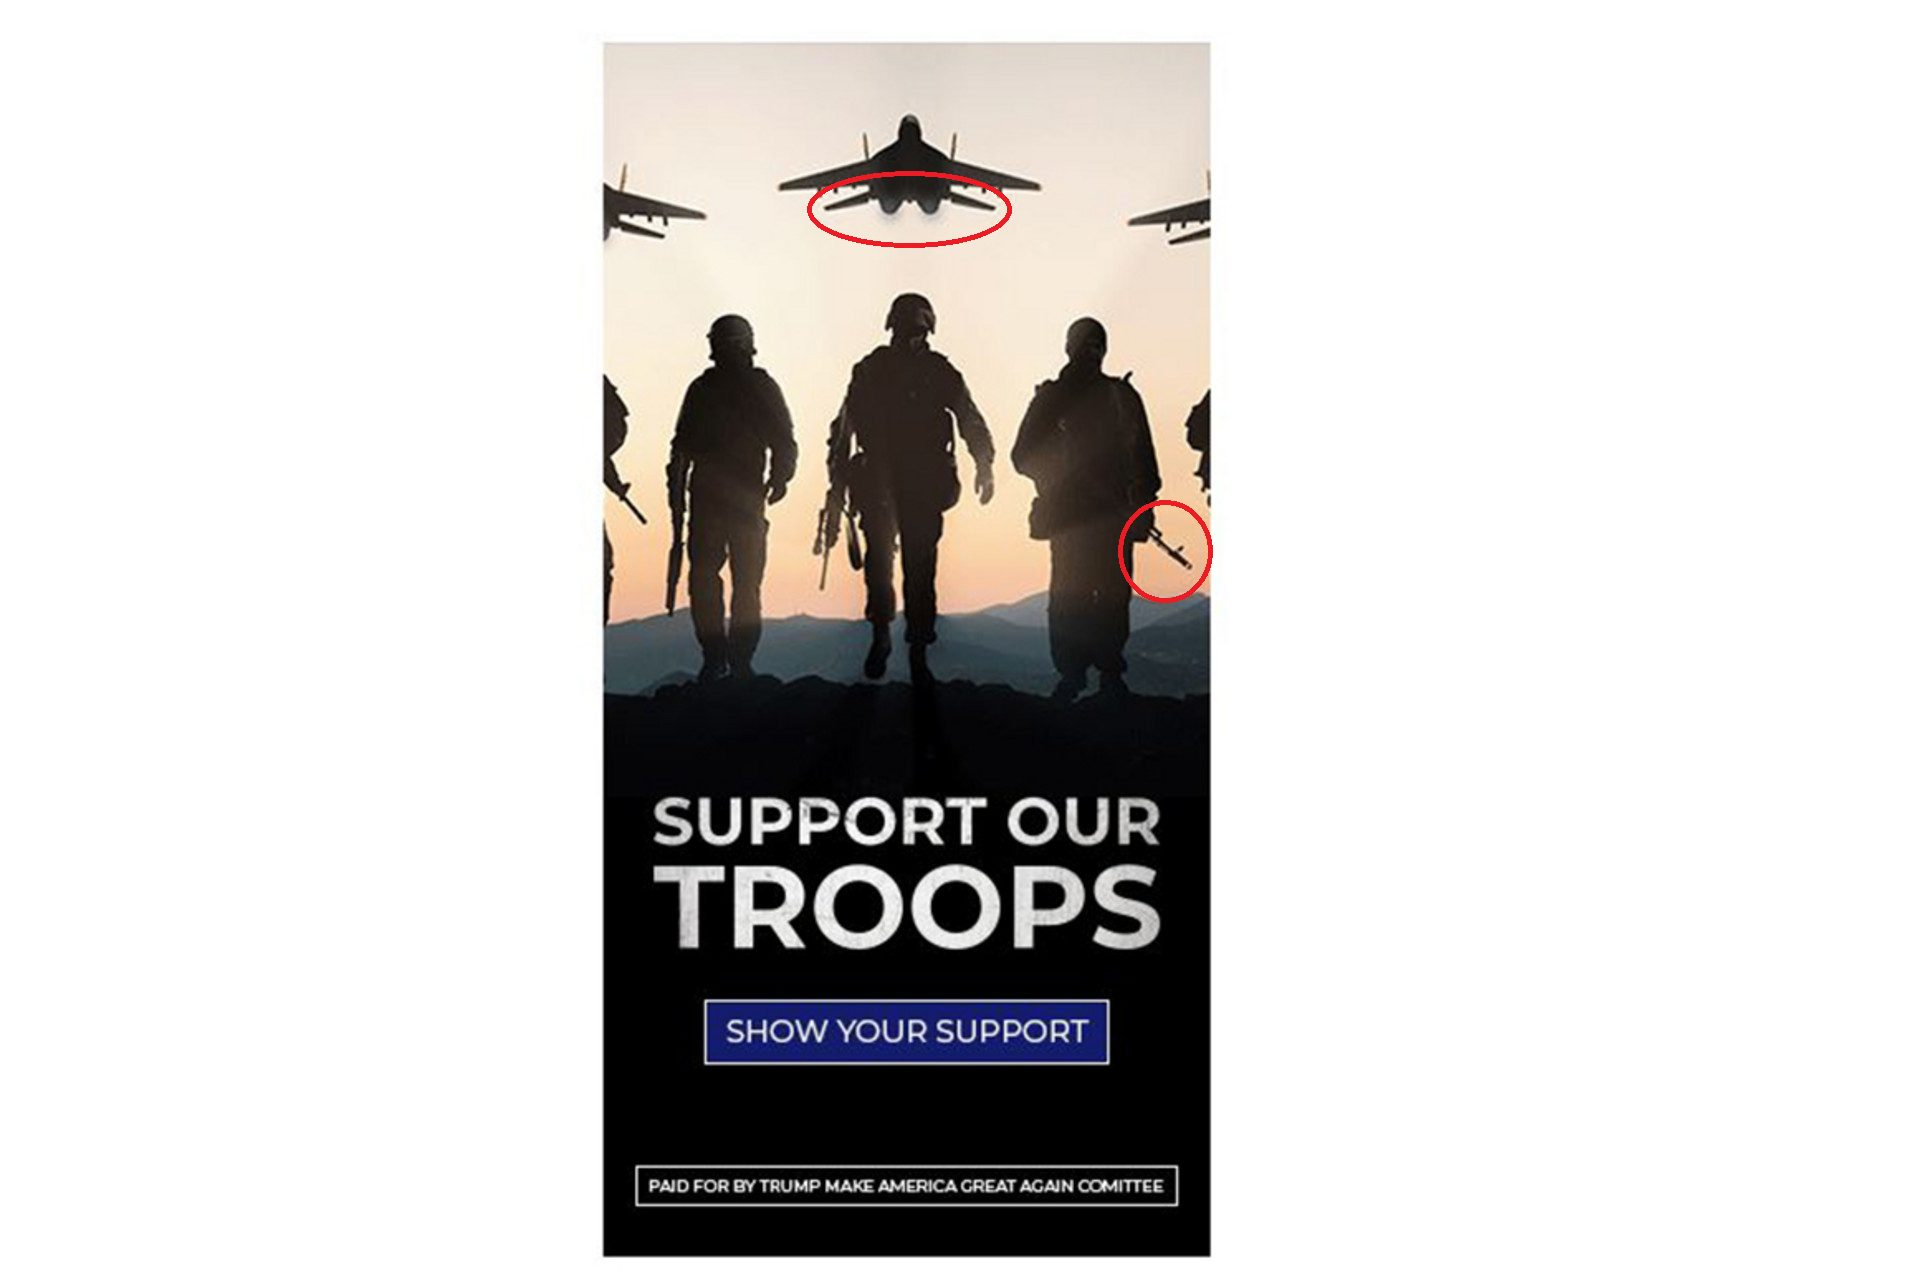 Trump Campaign Uses Poster Featuring Russian MiG-29 And Models With AK-47s